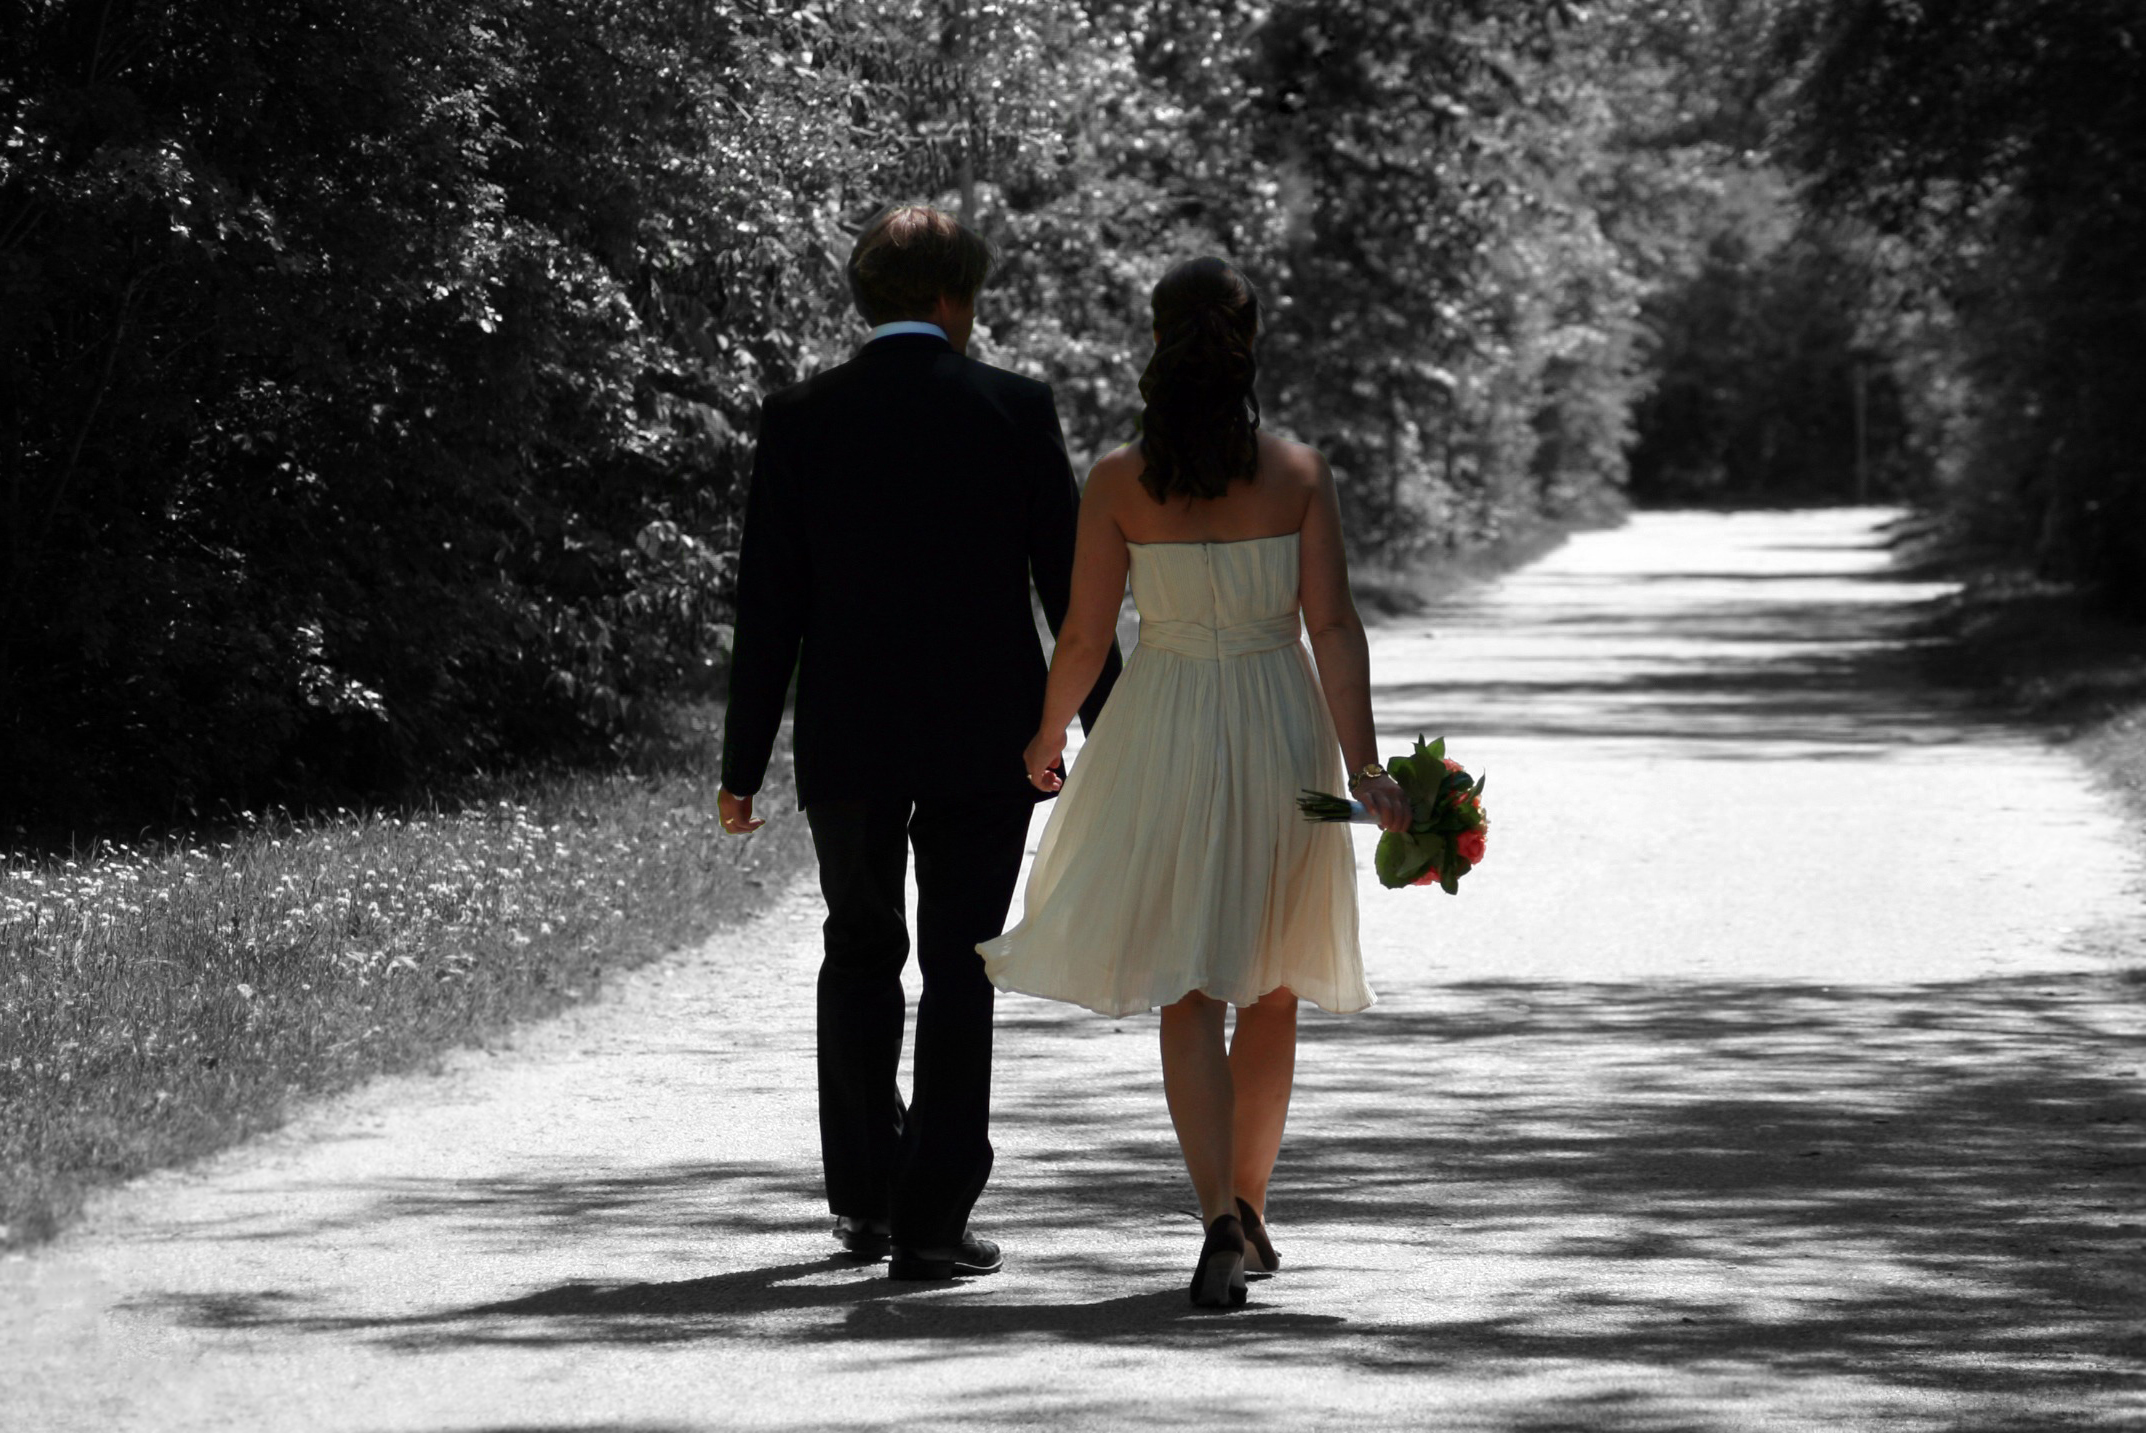 Married couple walking down country road enhanced further